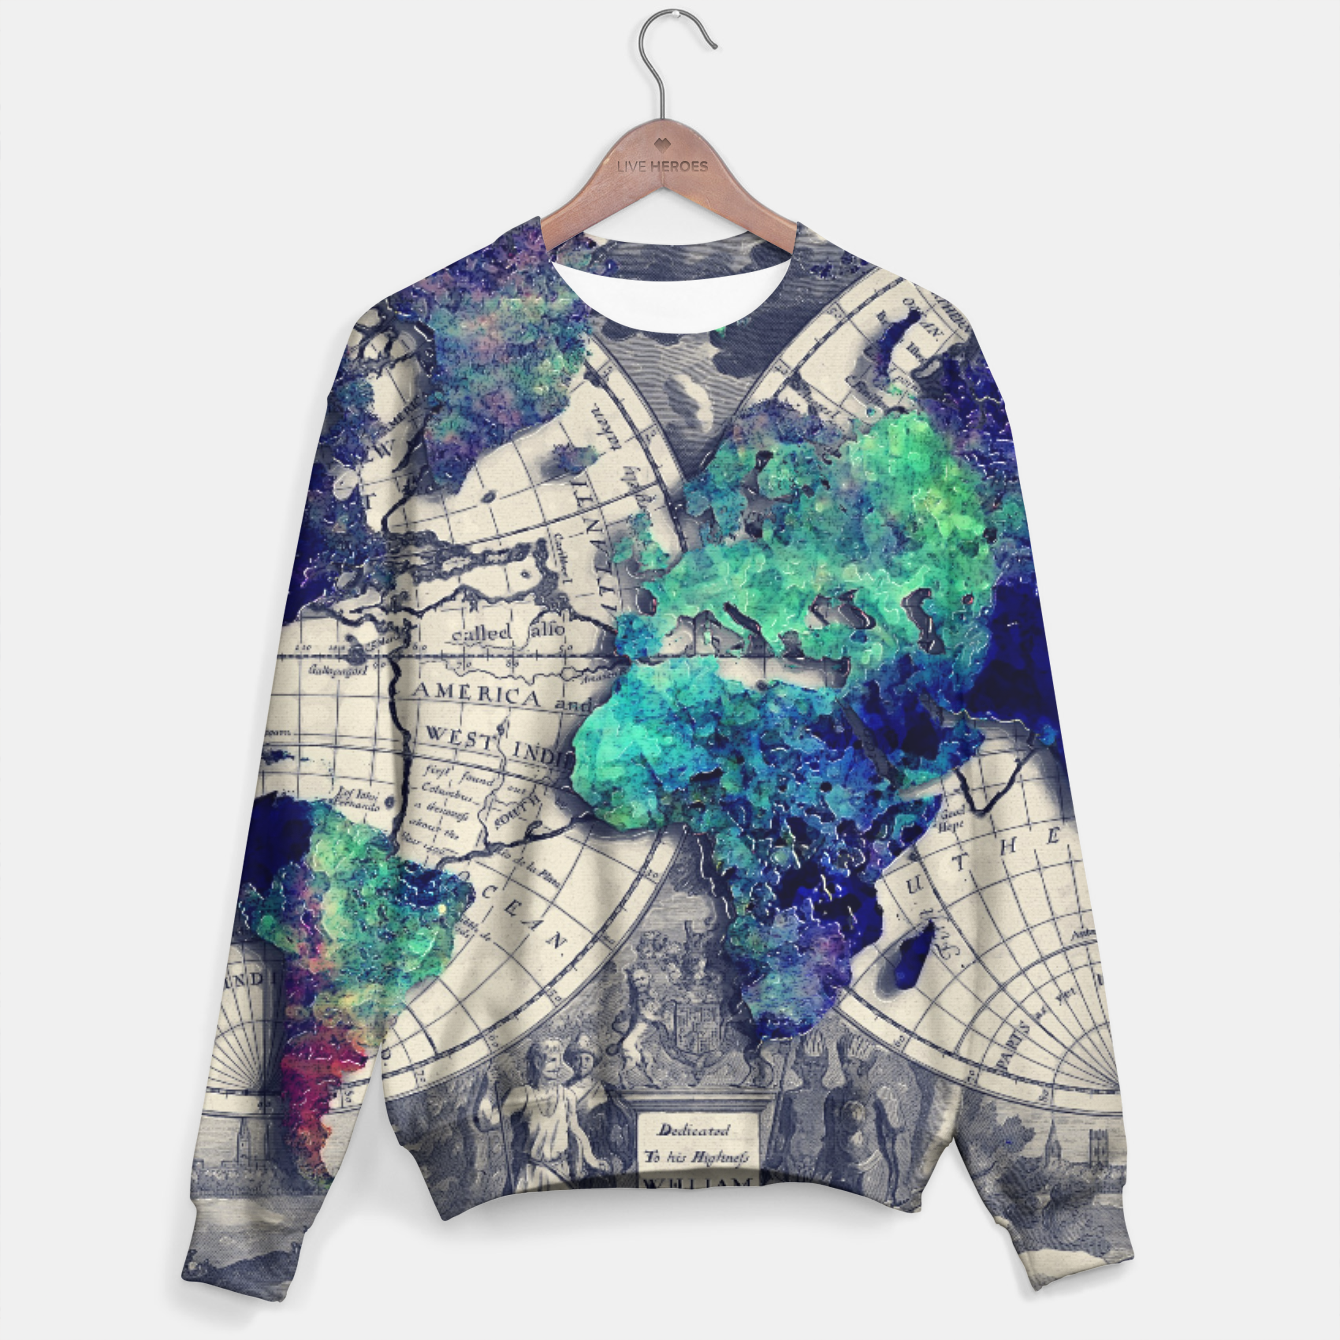 World Map Sweater.World Map Sweater Live Heroes